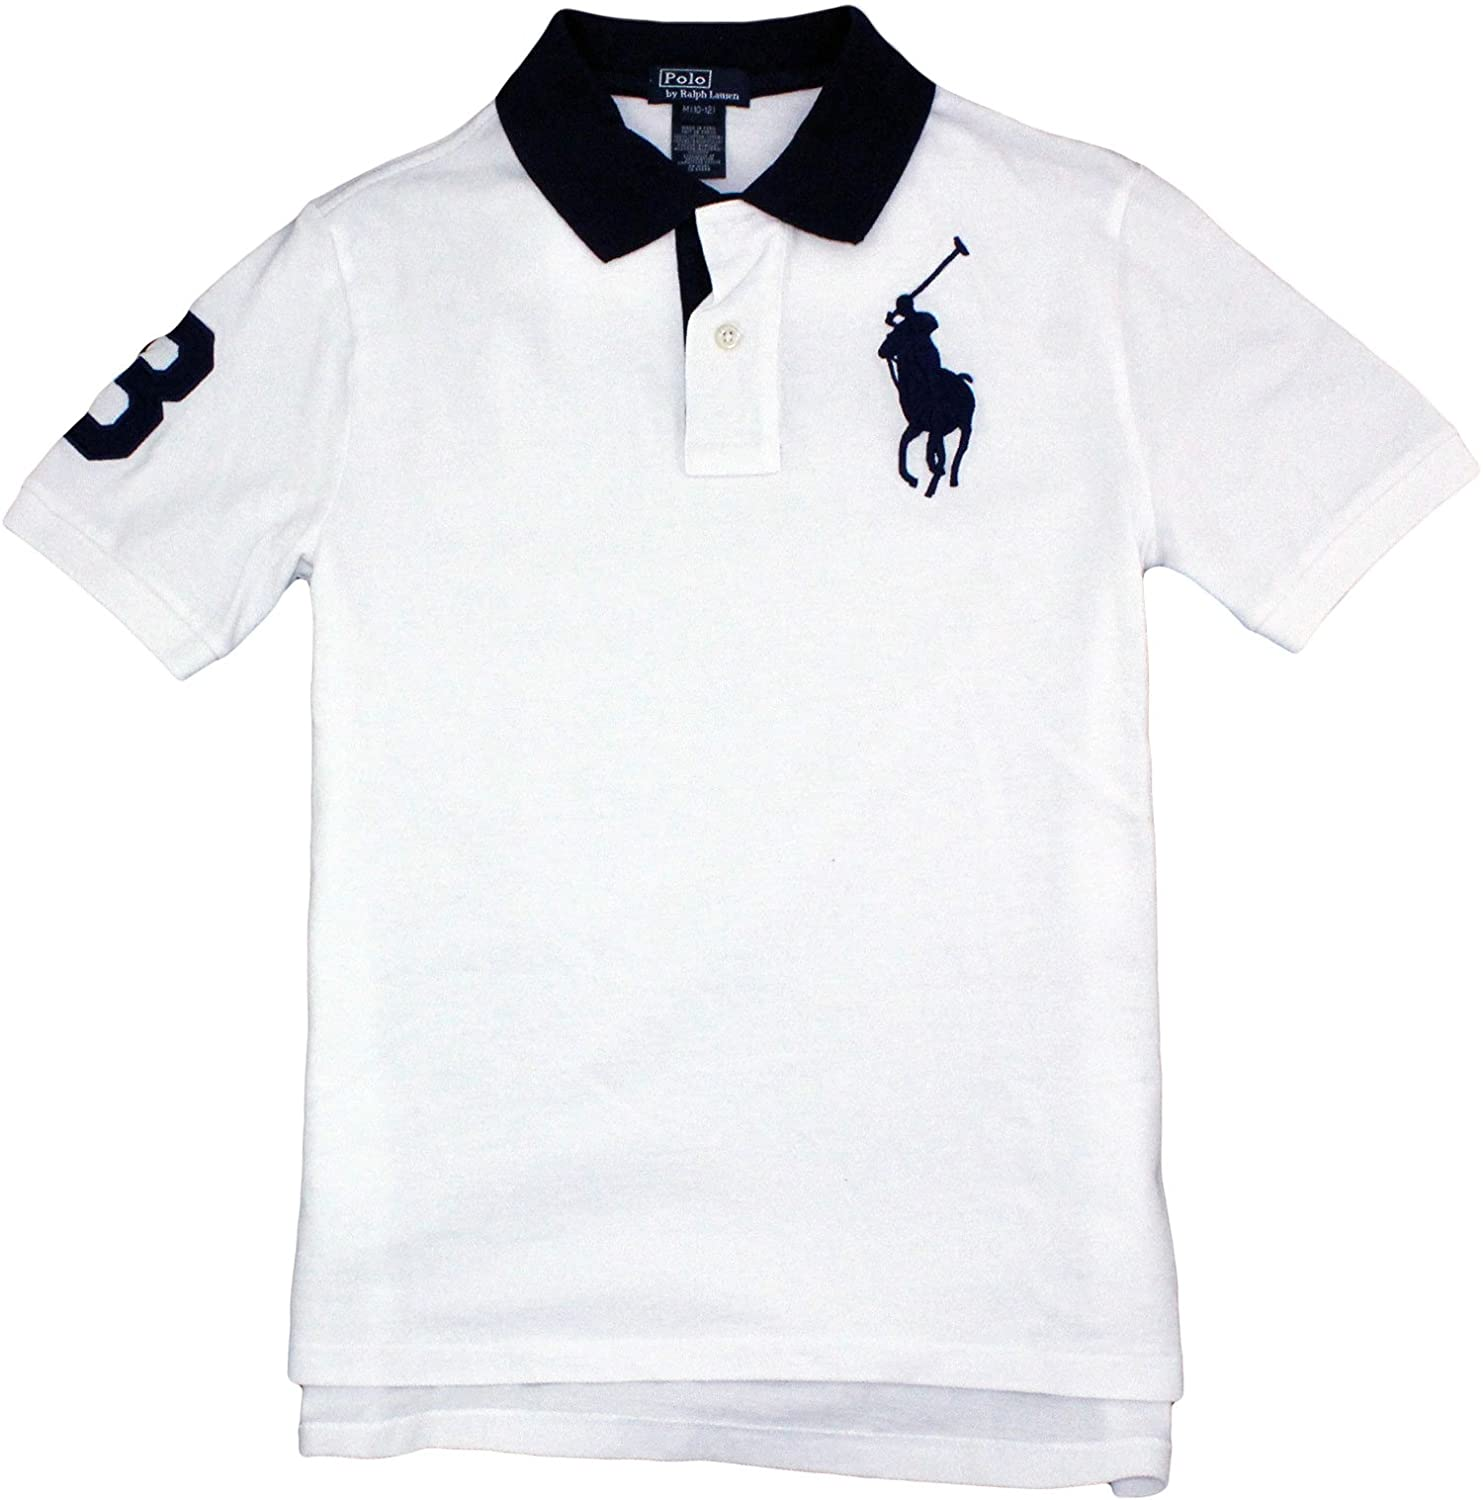 a9b8e608 Ralph Lauren Boy's Polo Shirt with # 3 on Arm